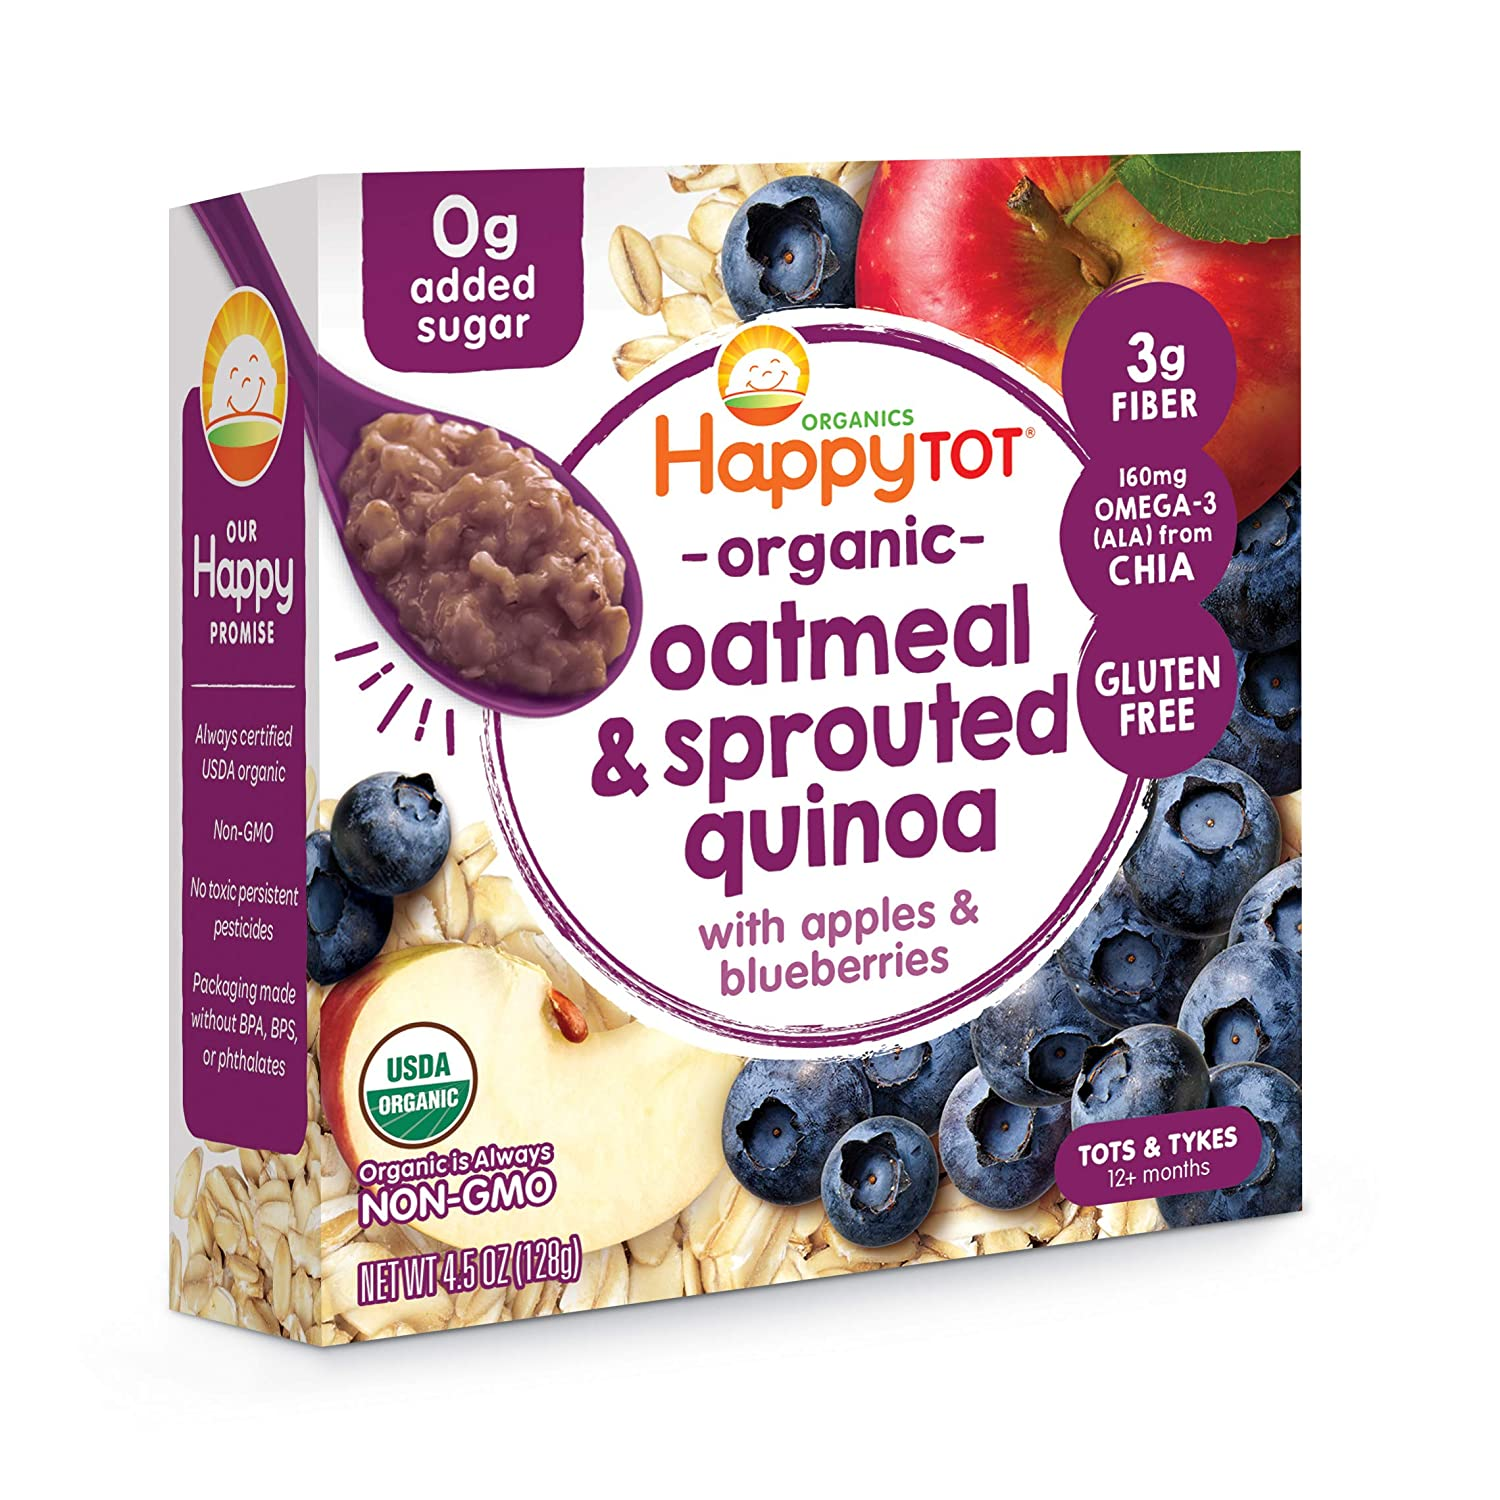 Happy Tot Super Morning Oatmeal Bowls Organic Toddler Food Apples and Blueberries, 4.5 Ounce Bowls (Pack of 8) (Packaging May Vary)